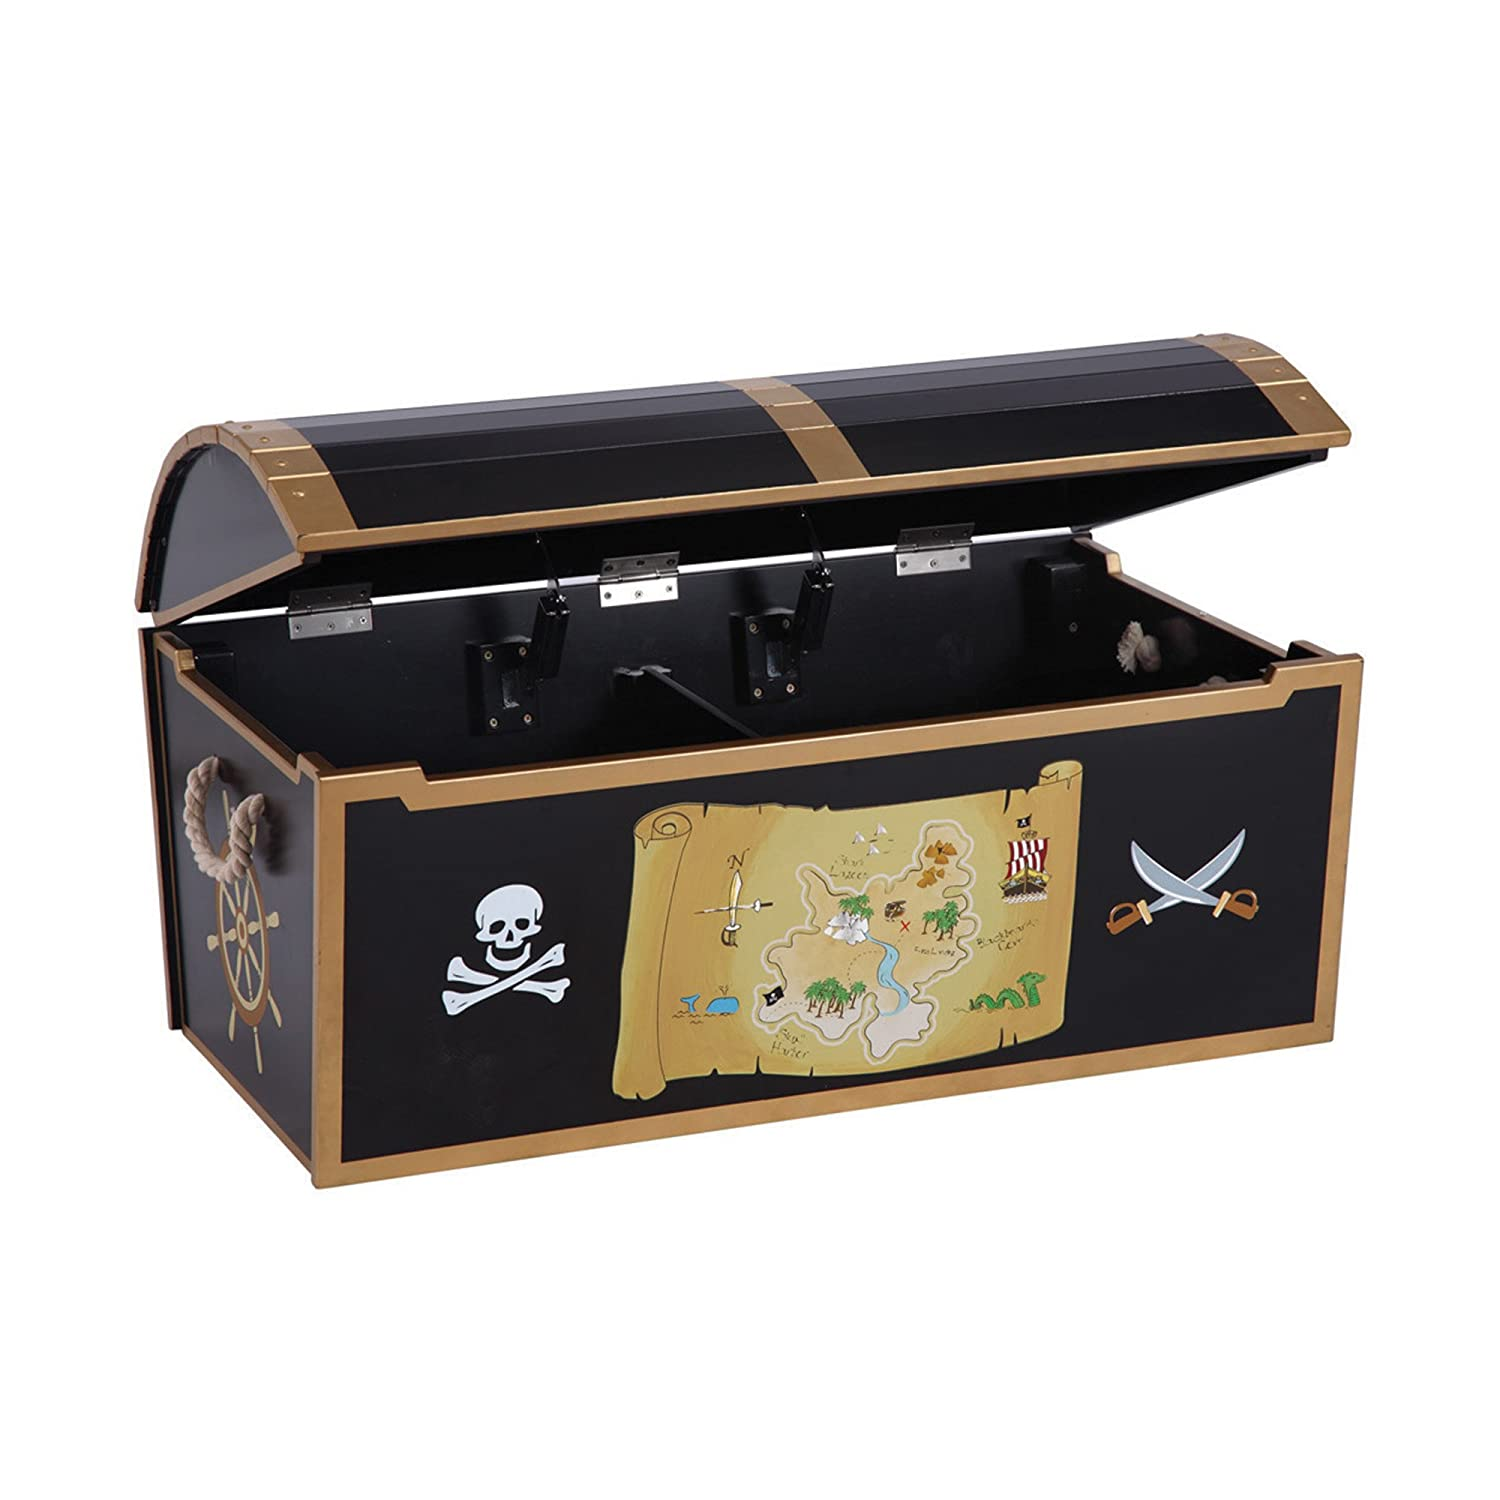 Amazon.com Guidecraft Hand-painted Pirate Treasure Chest - Toy Box Kids Storage Furniture Baby  sc 1 st  Amazon.com & Amazon.com: Guidecraft Hand-painted Pirate Treasure Chest - Toy ... Aboutintivar.Com